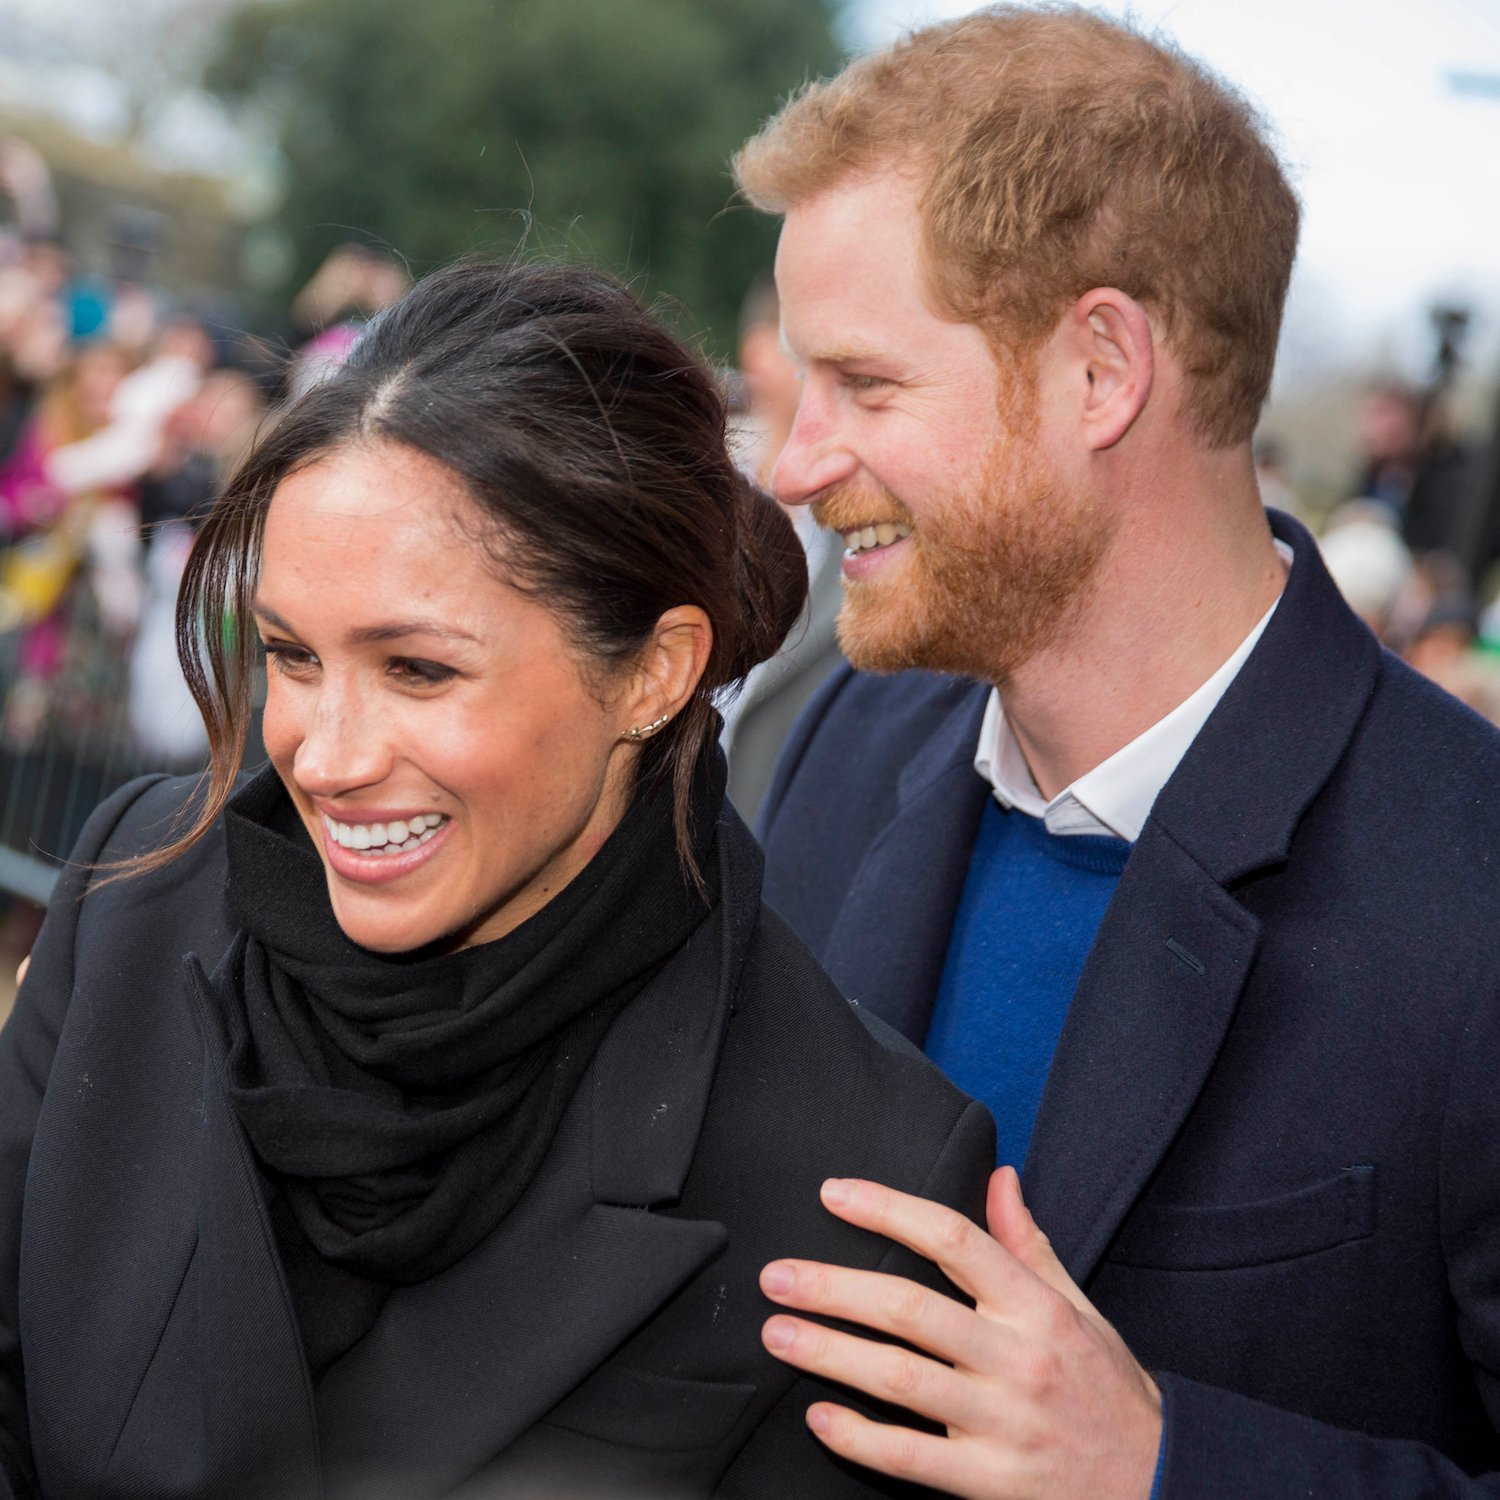 Listen: Harry and Meghan Welcome Daughter, Lilibet Diana - cover